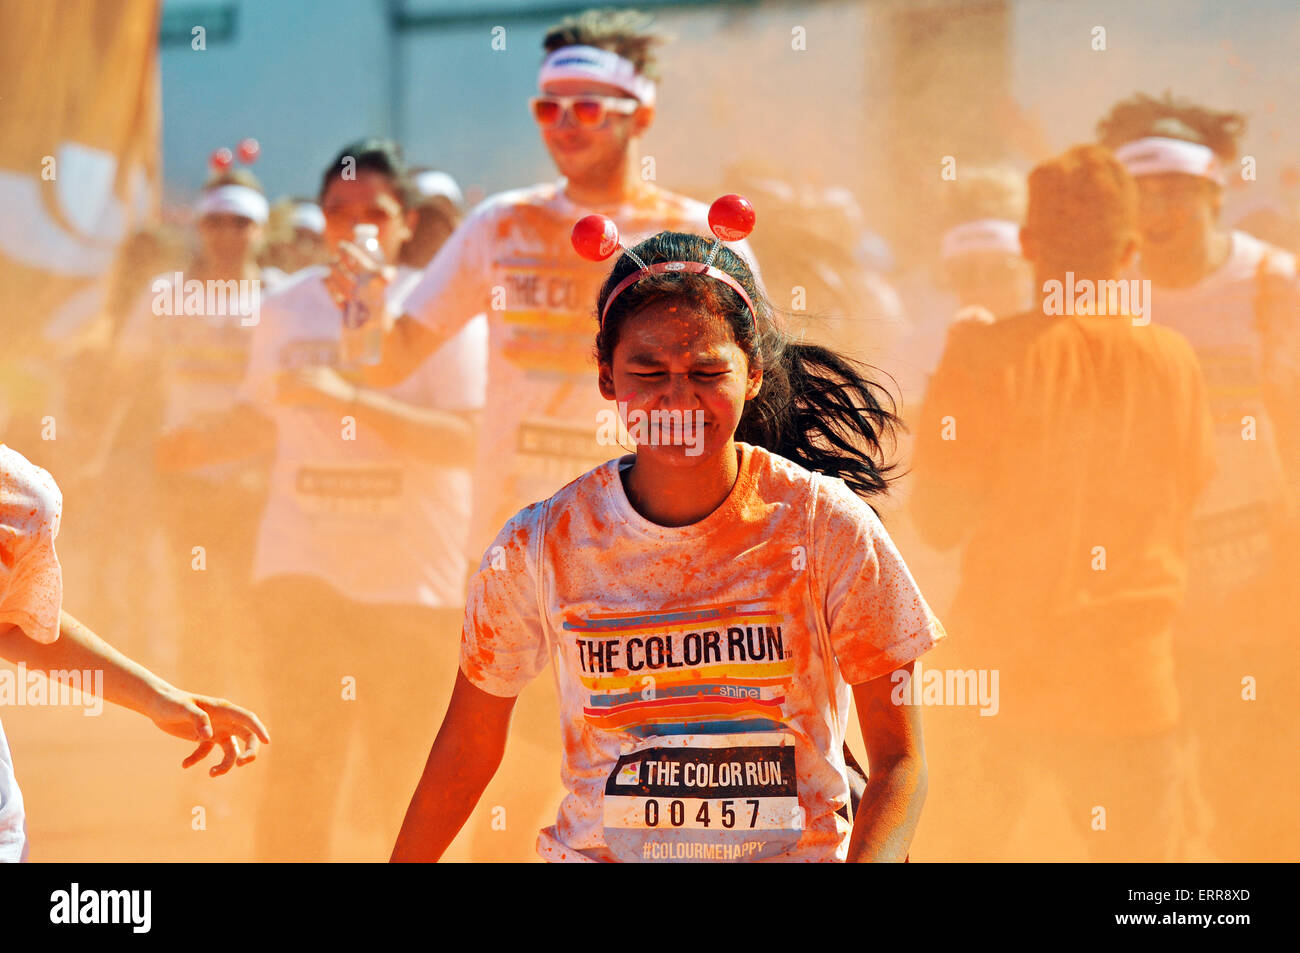 The Color Run Wembley, UK. Runners covered in coloured powder. London. Space for copy - Stock Image